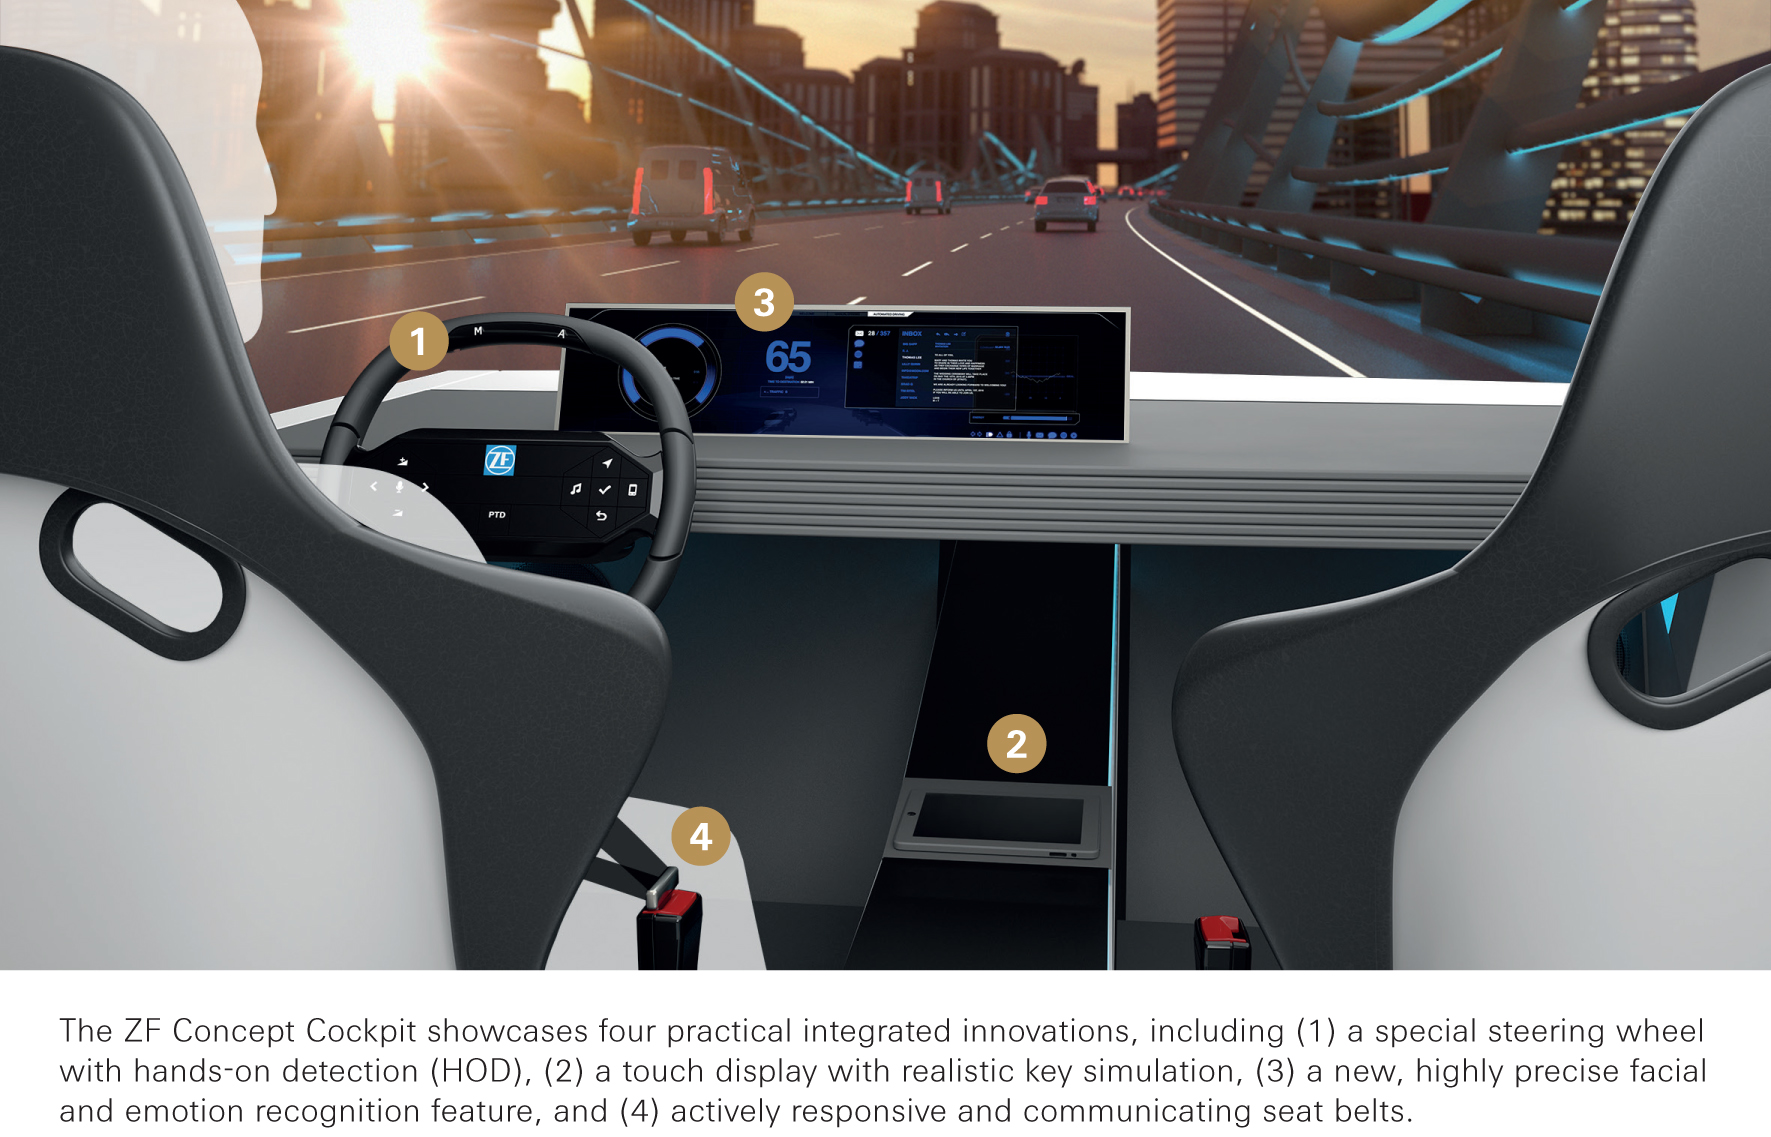 The ZF Concept Cockpit showcases four practical integrated innovations, including (1) a special steering wheel with hands on/off detection, (2) a touch display with realistic key simulation, (3) a new, highly precise facial and emotion recognition feature, and (4) actively responsive and communicating seat belts.